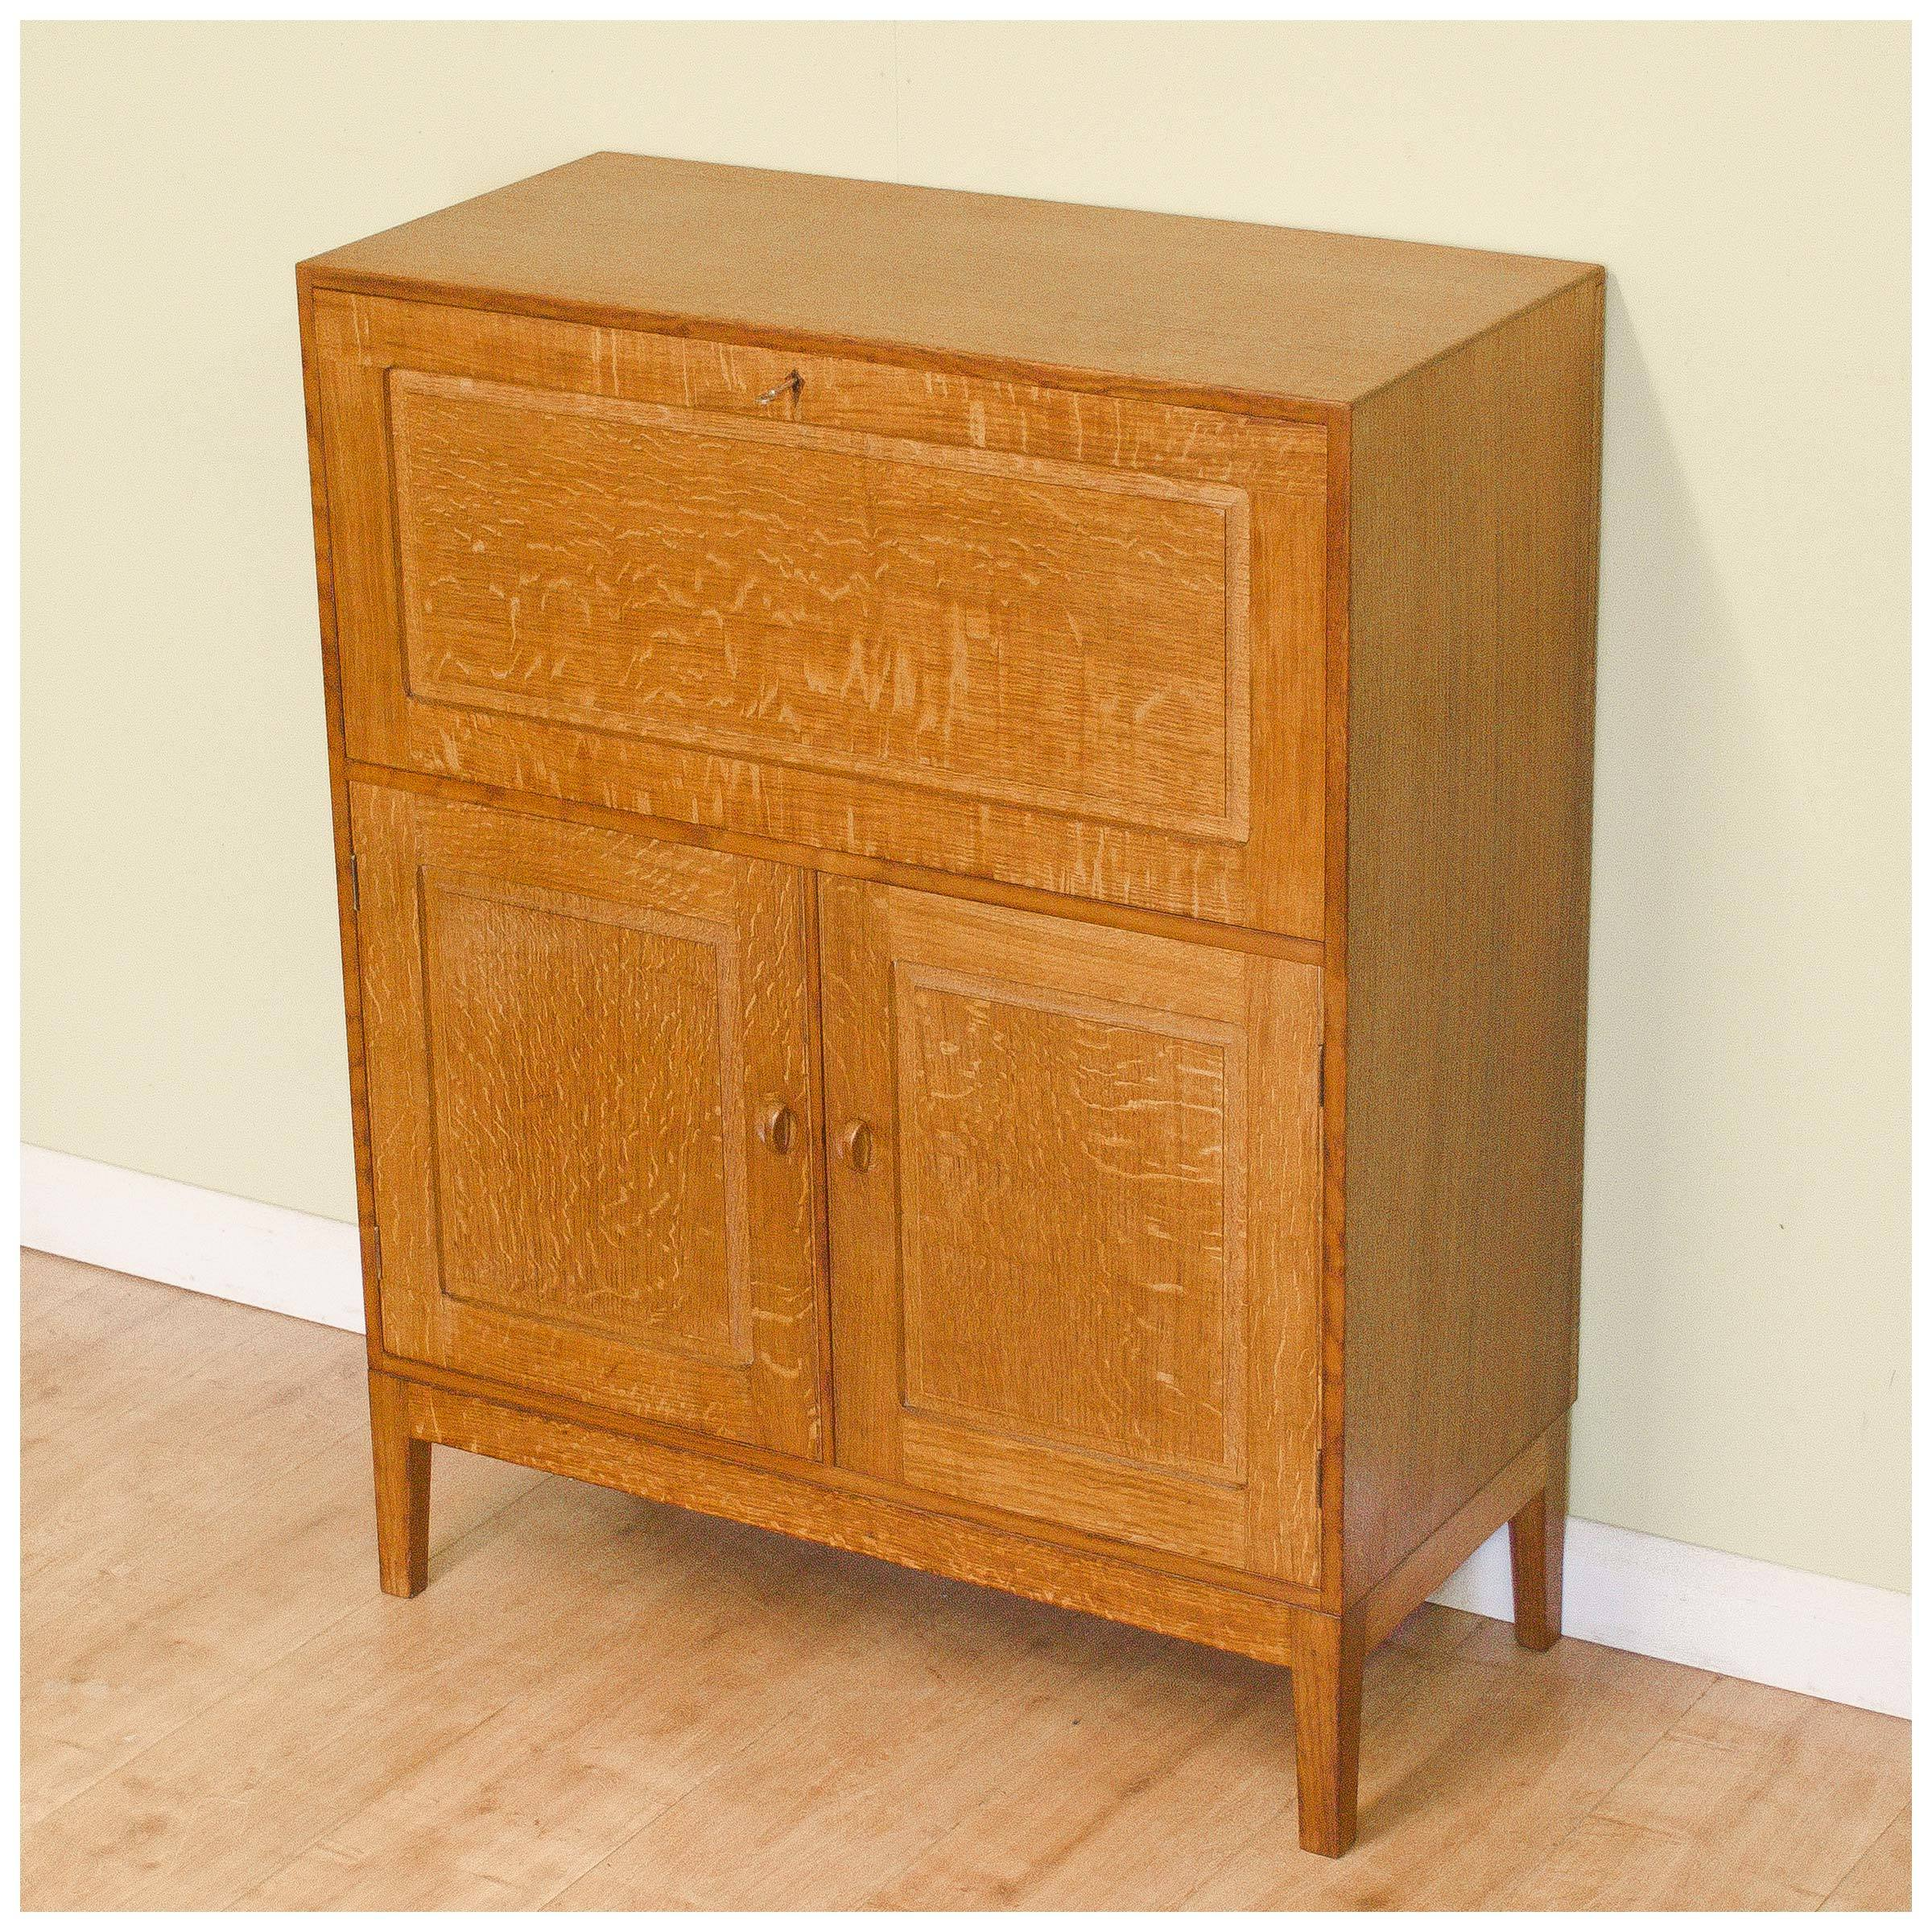 arts-and-crafts-oak-bureau-cabinet-by-edward-barnsley-the-barnsley-workshop-b0020140n.jpg